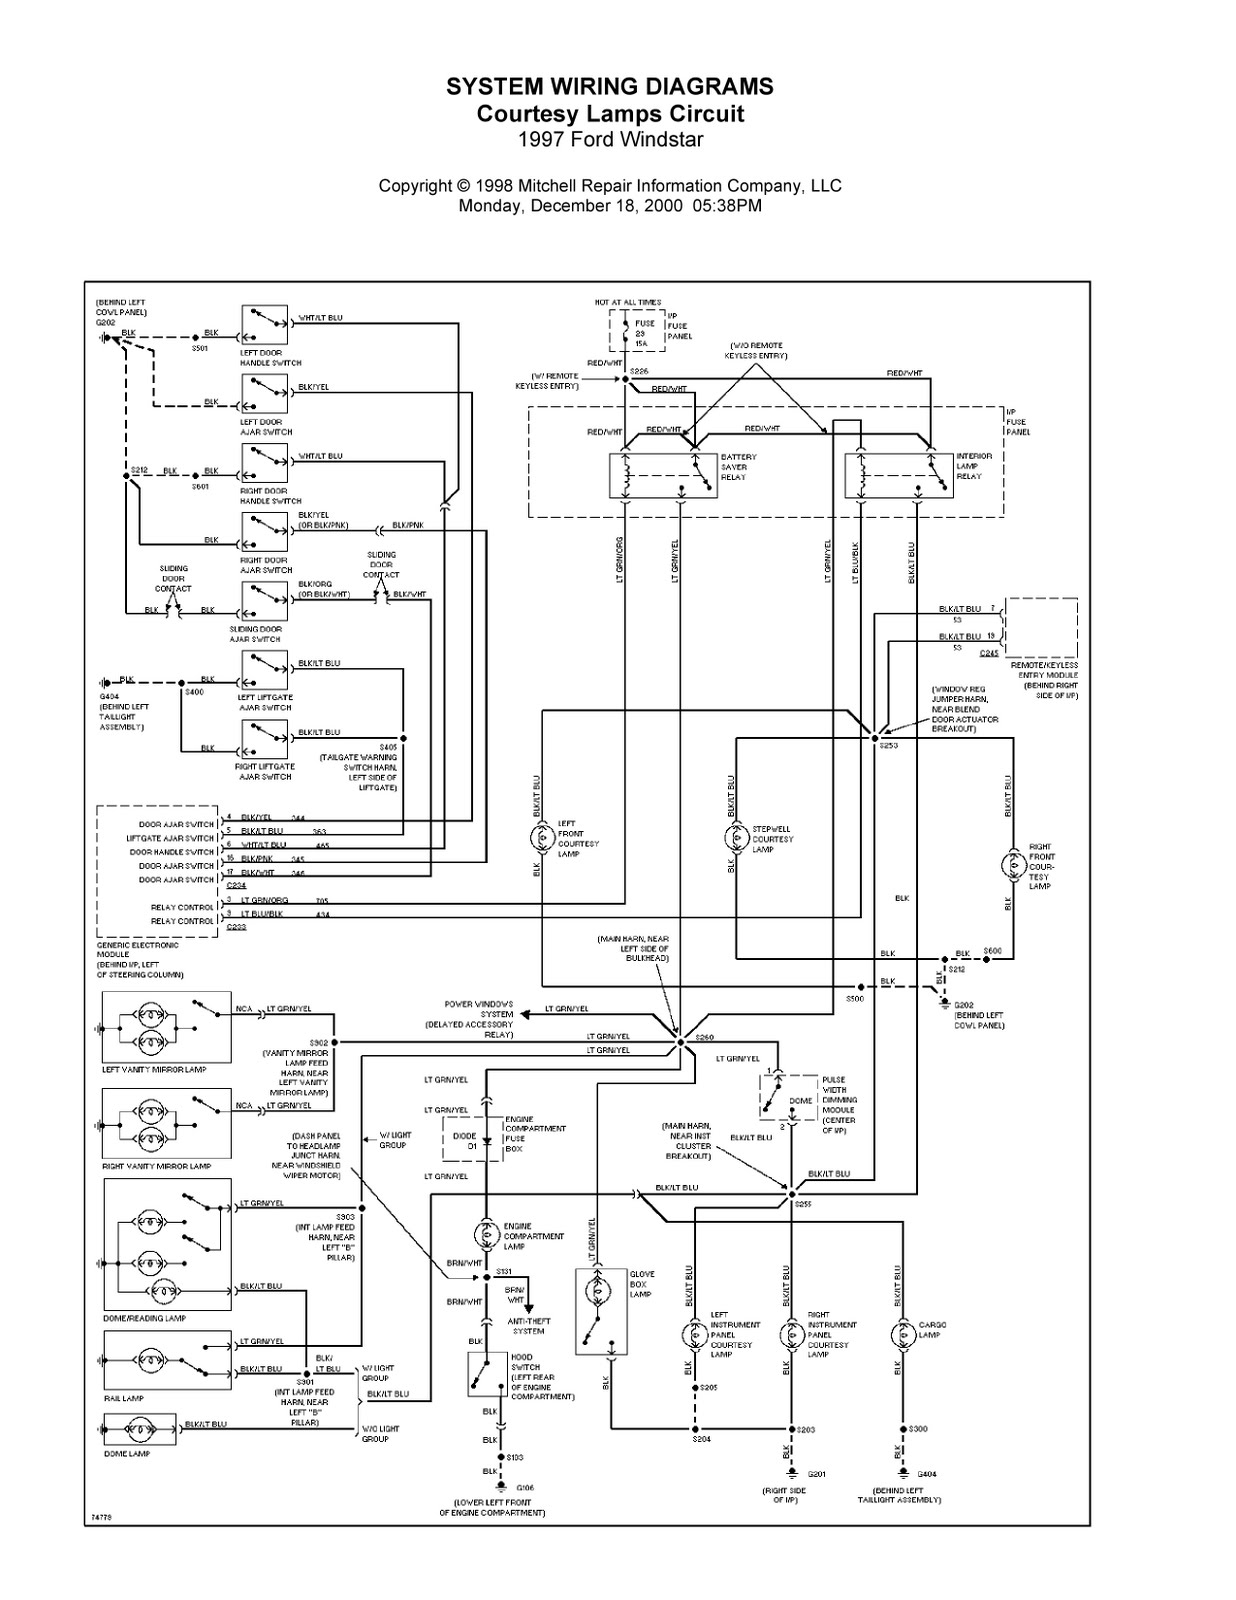 medium resolution of 1997 ford windstar complete system wiring diagrams 2000 ford windstar electrical diagram 2001 ford windstar electrical